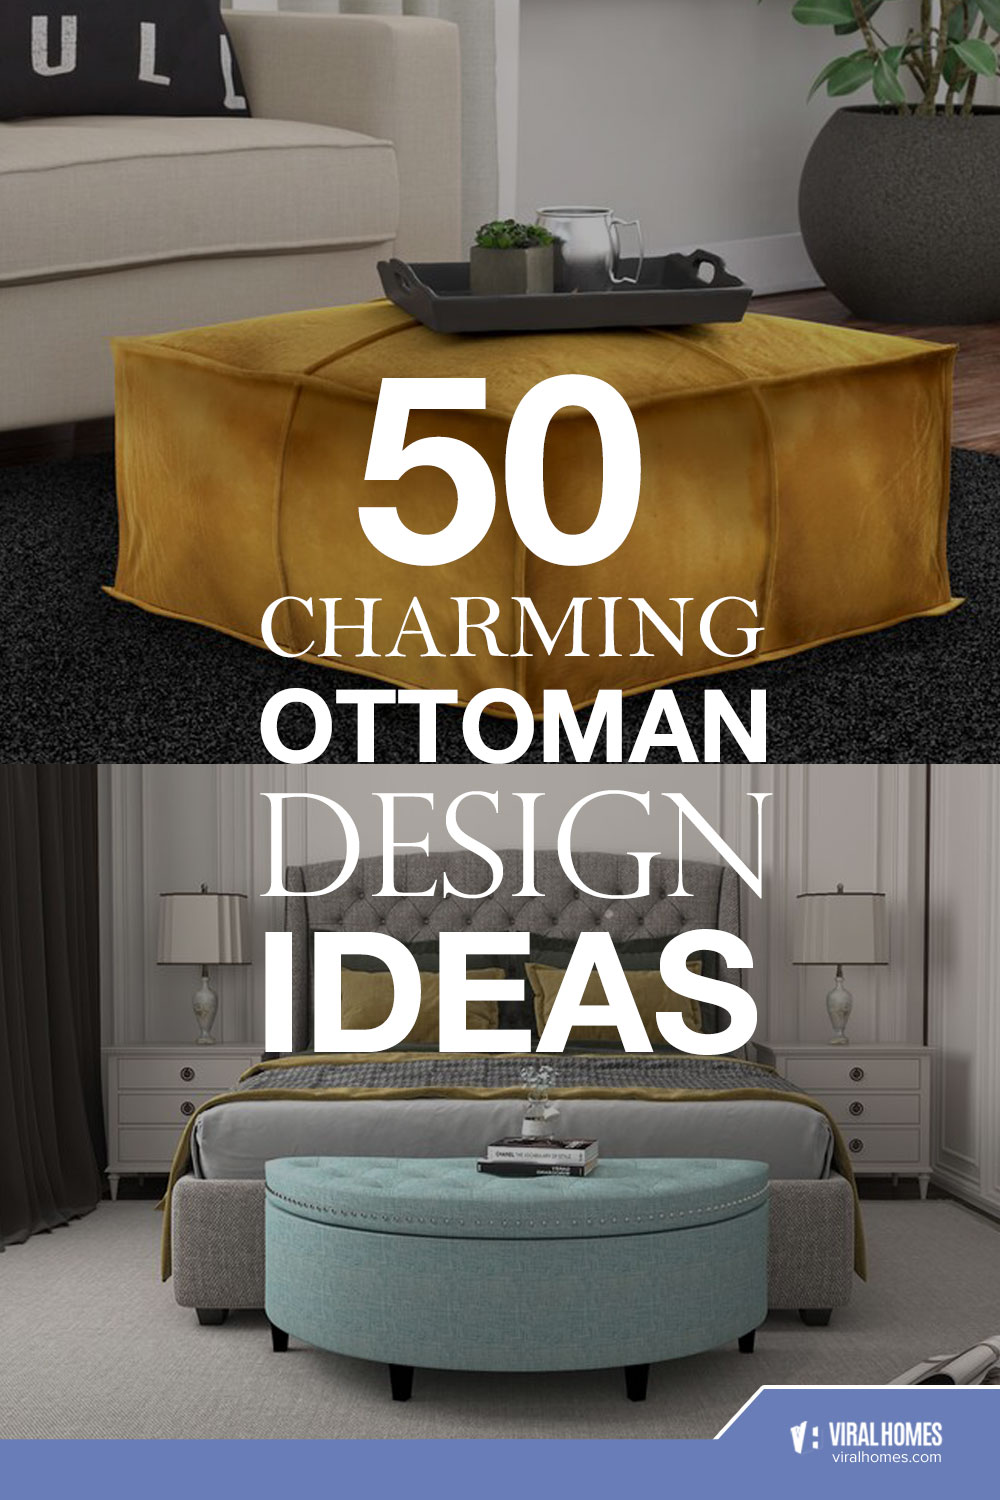 50 Ottoman Designs That Are Eye-Catching